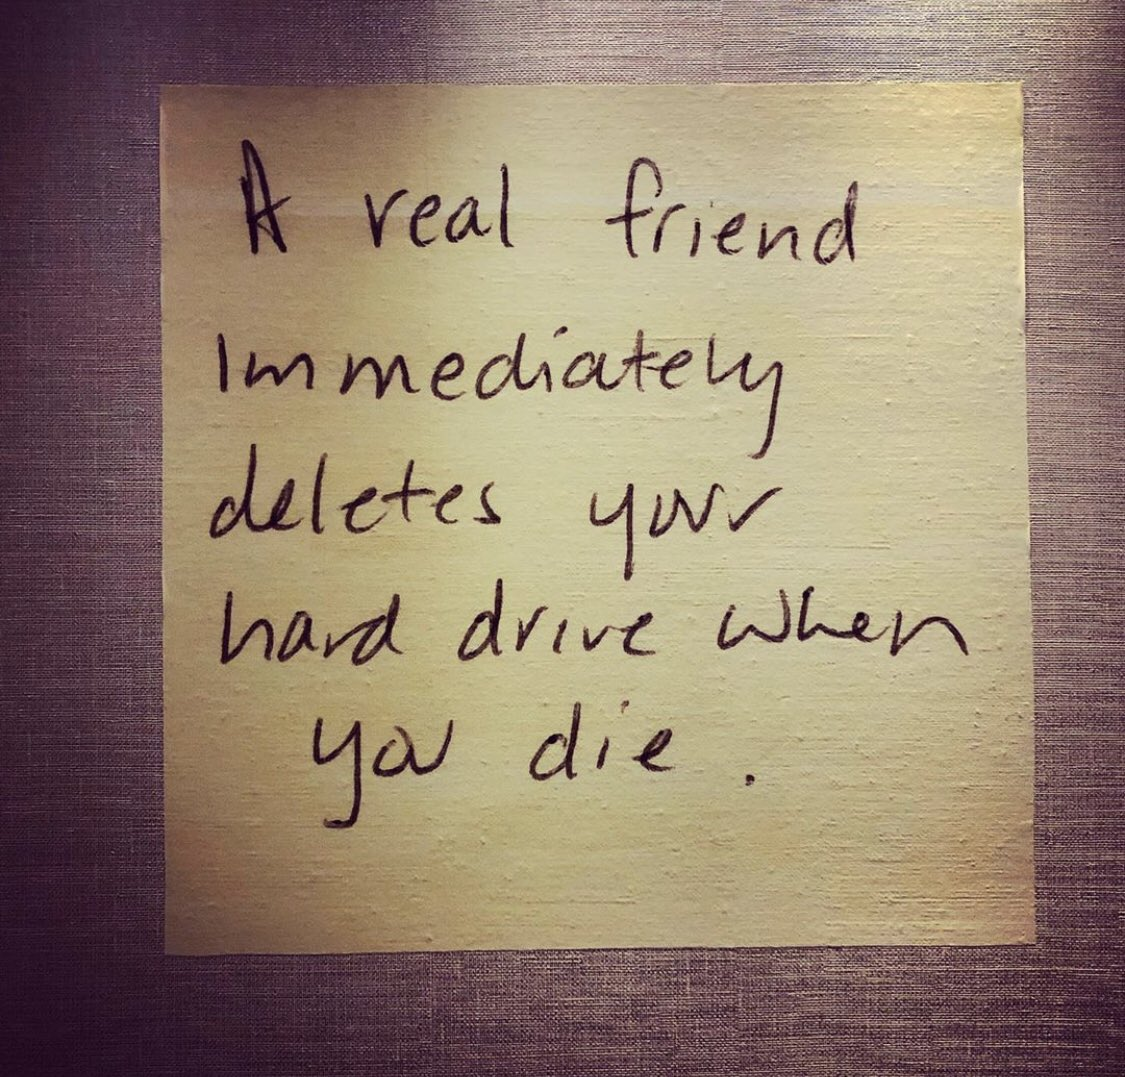 The real #friend according to the digital age metrics 😉